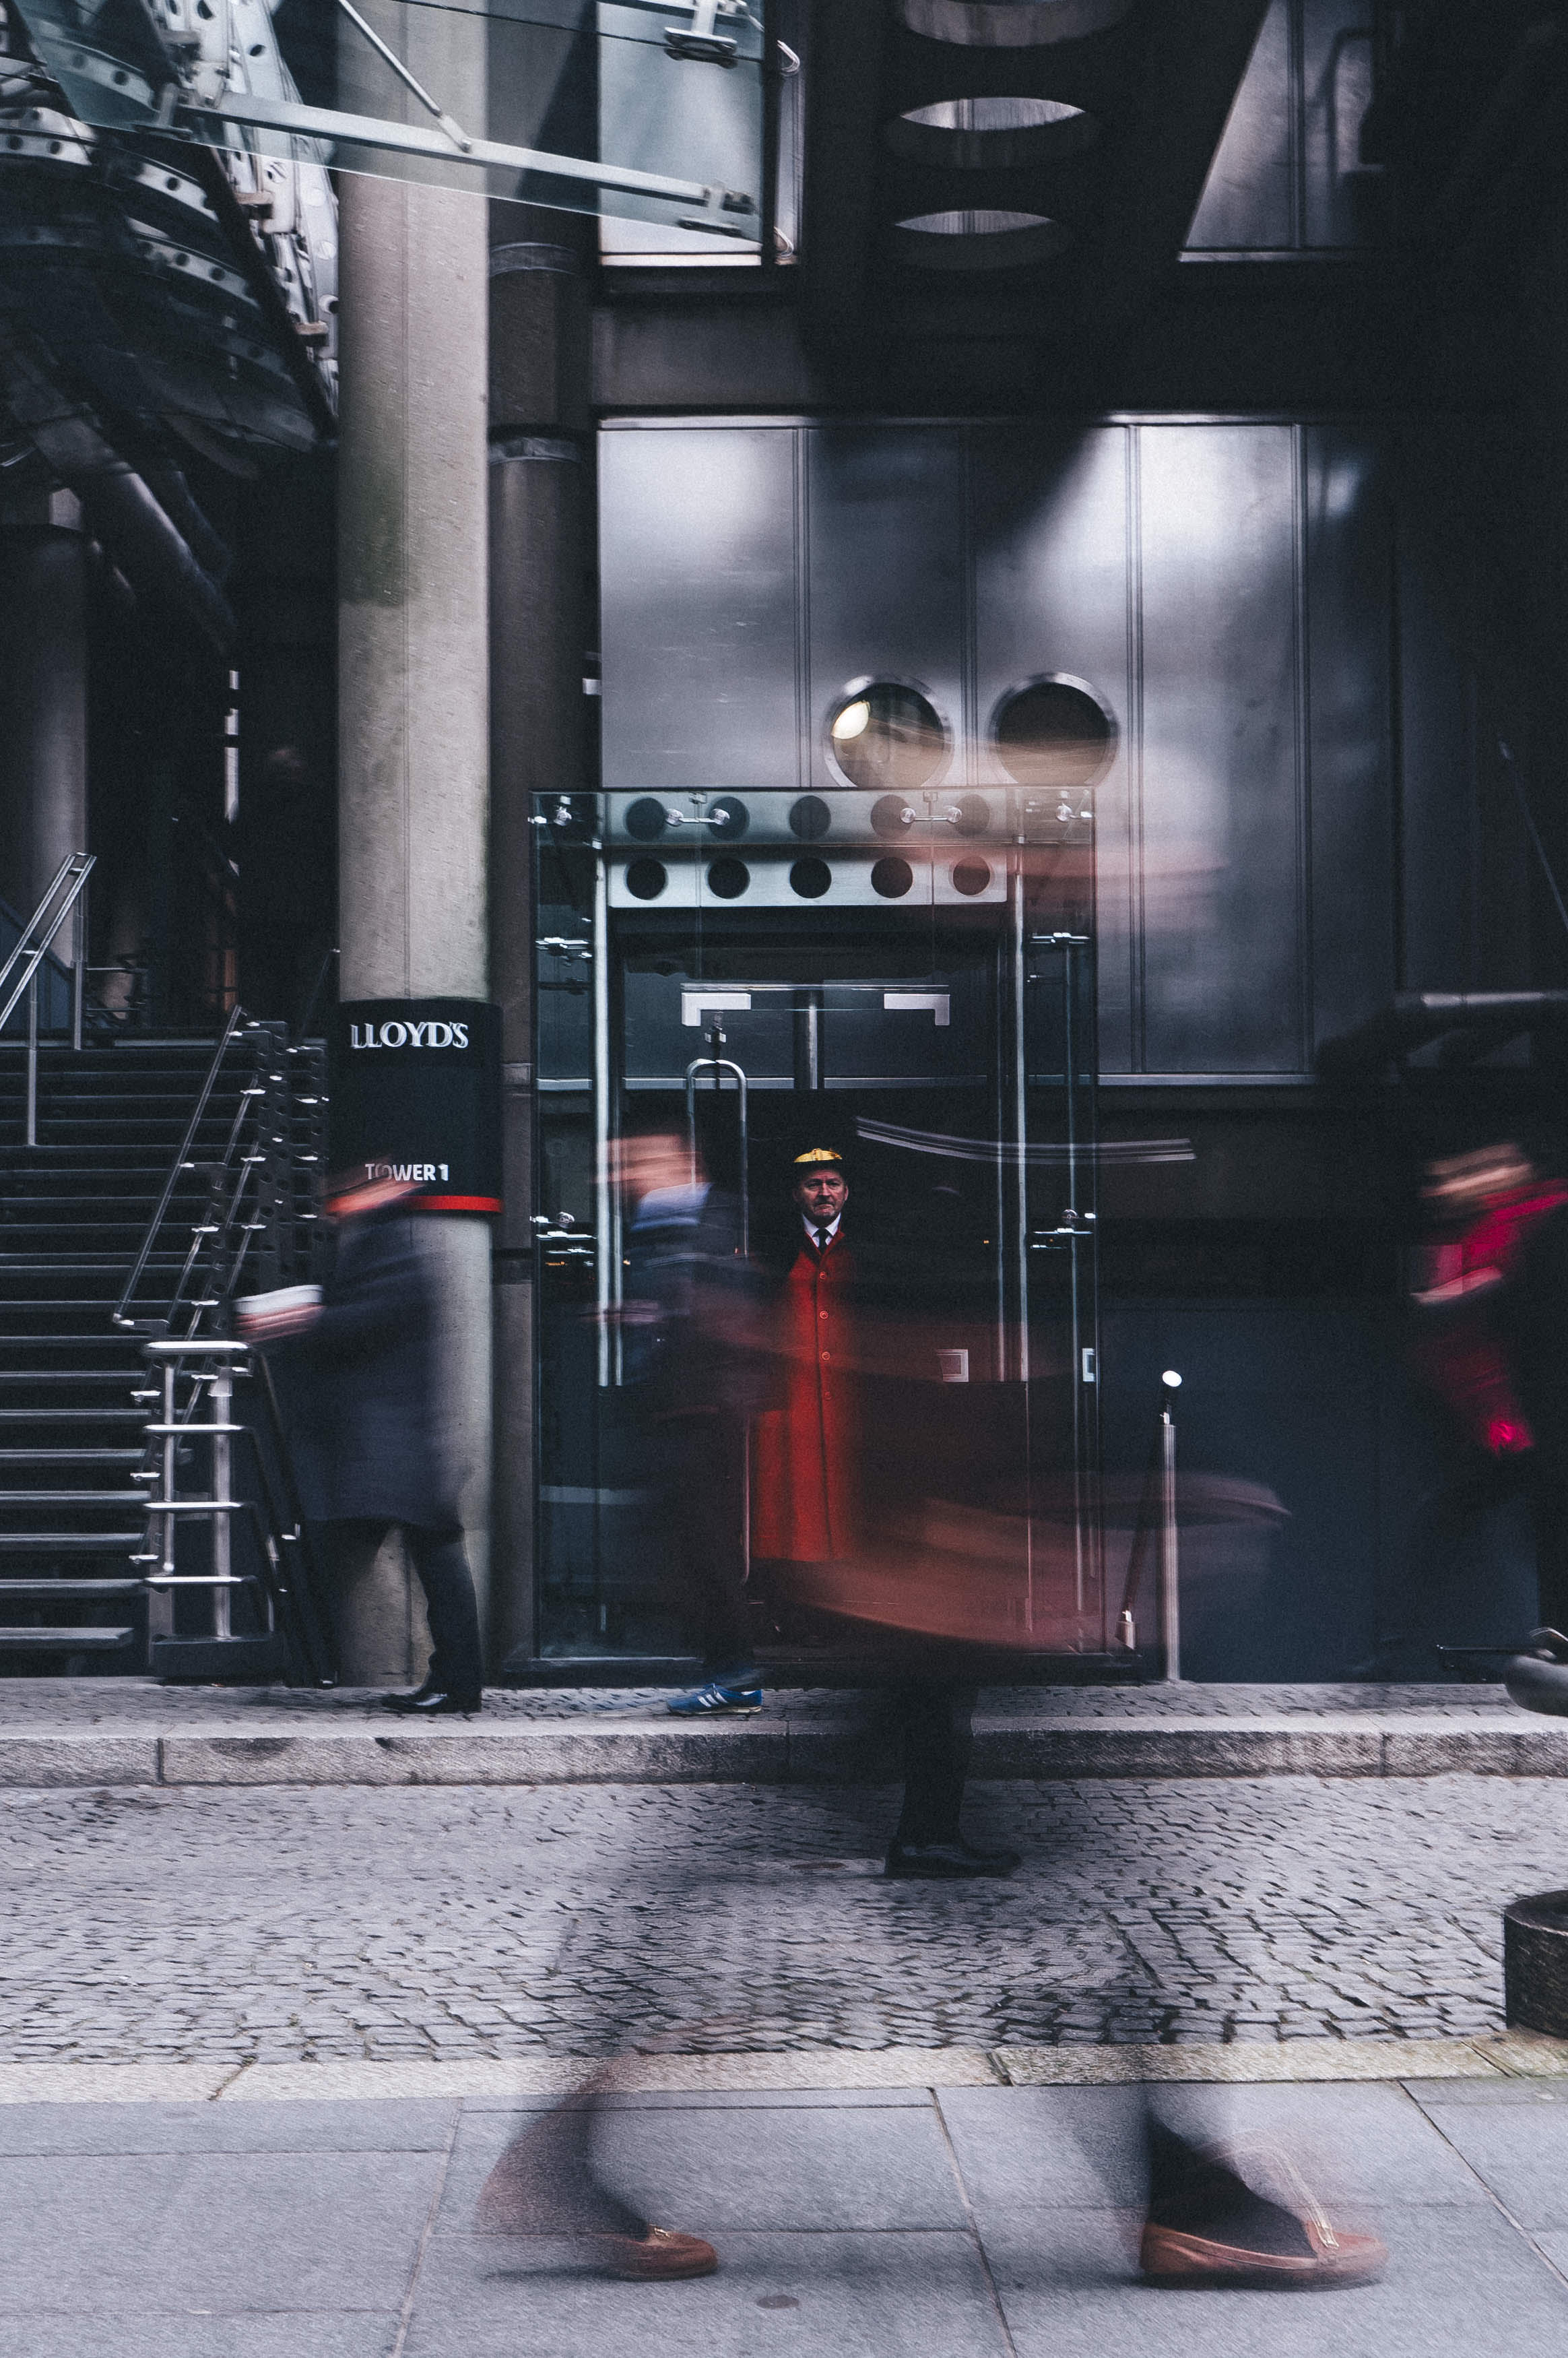 example image of motion blur for learning beginner photography